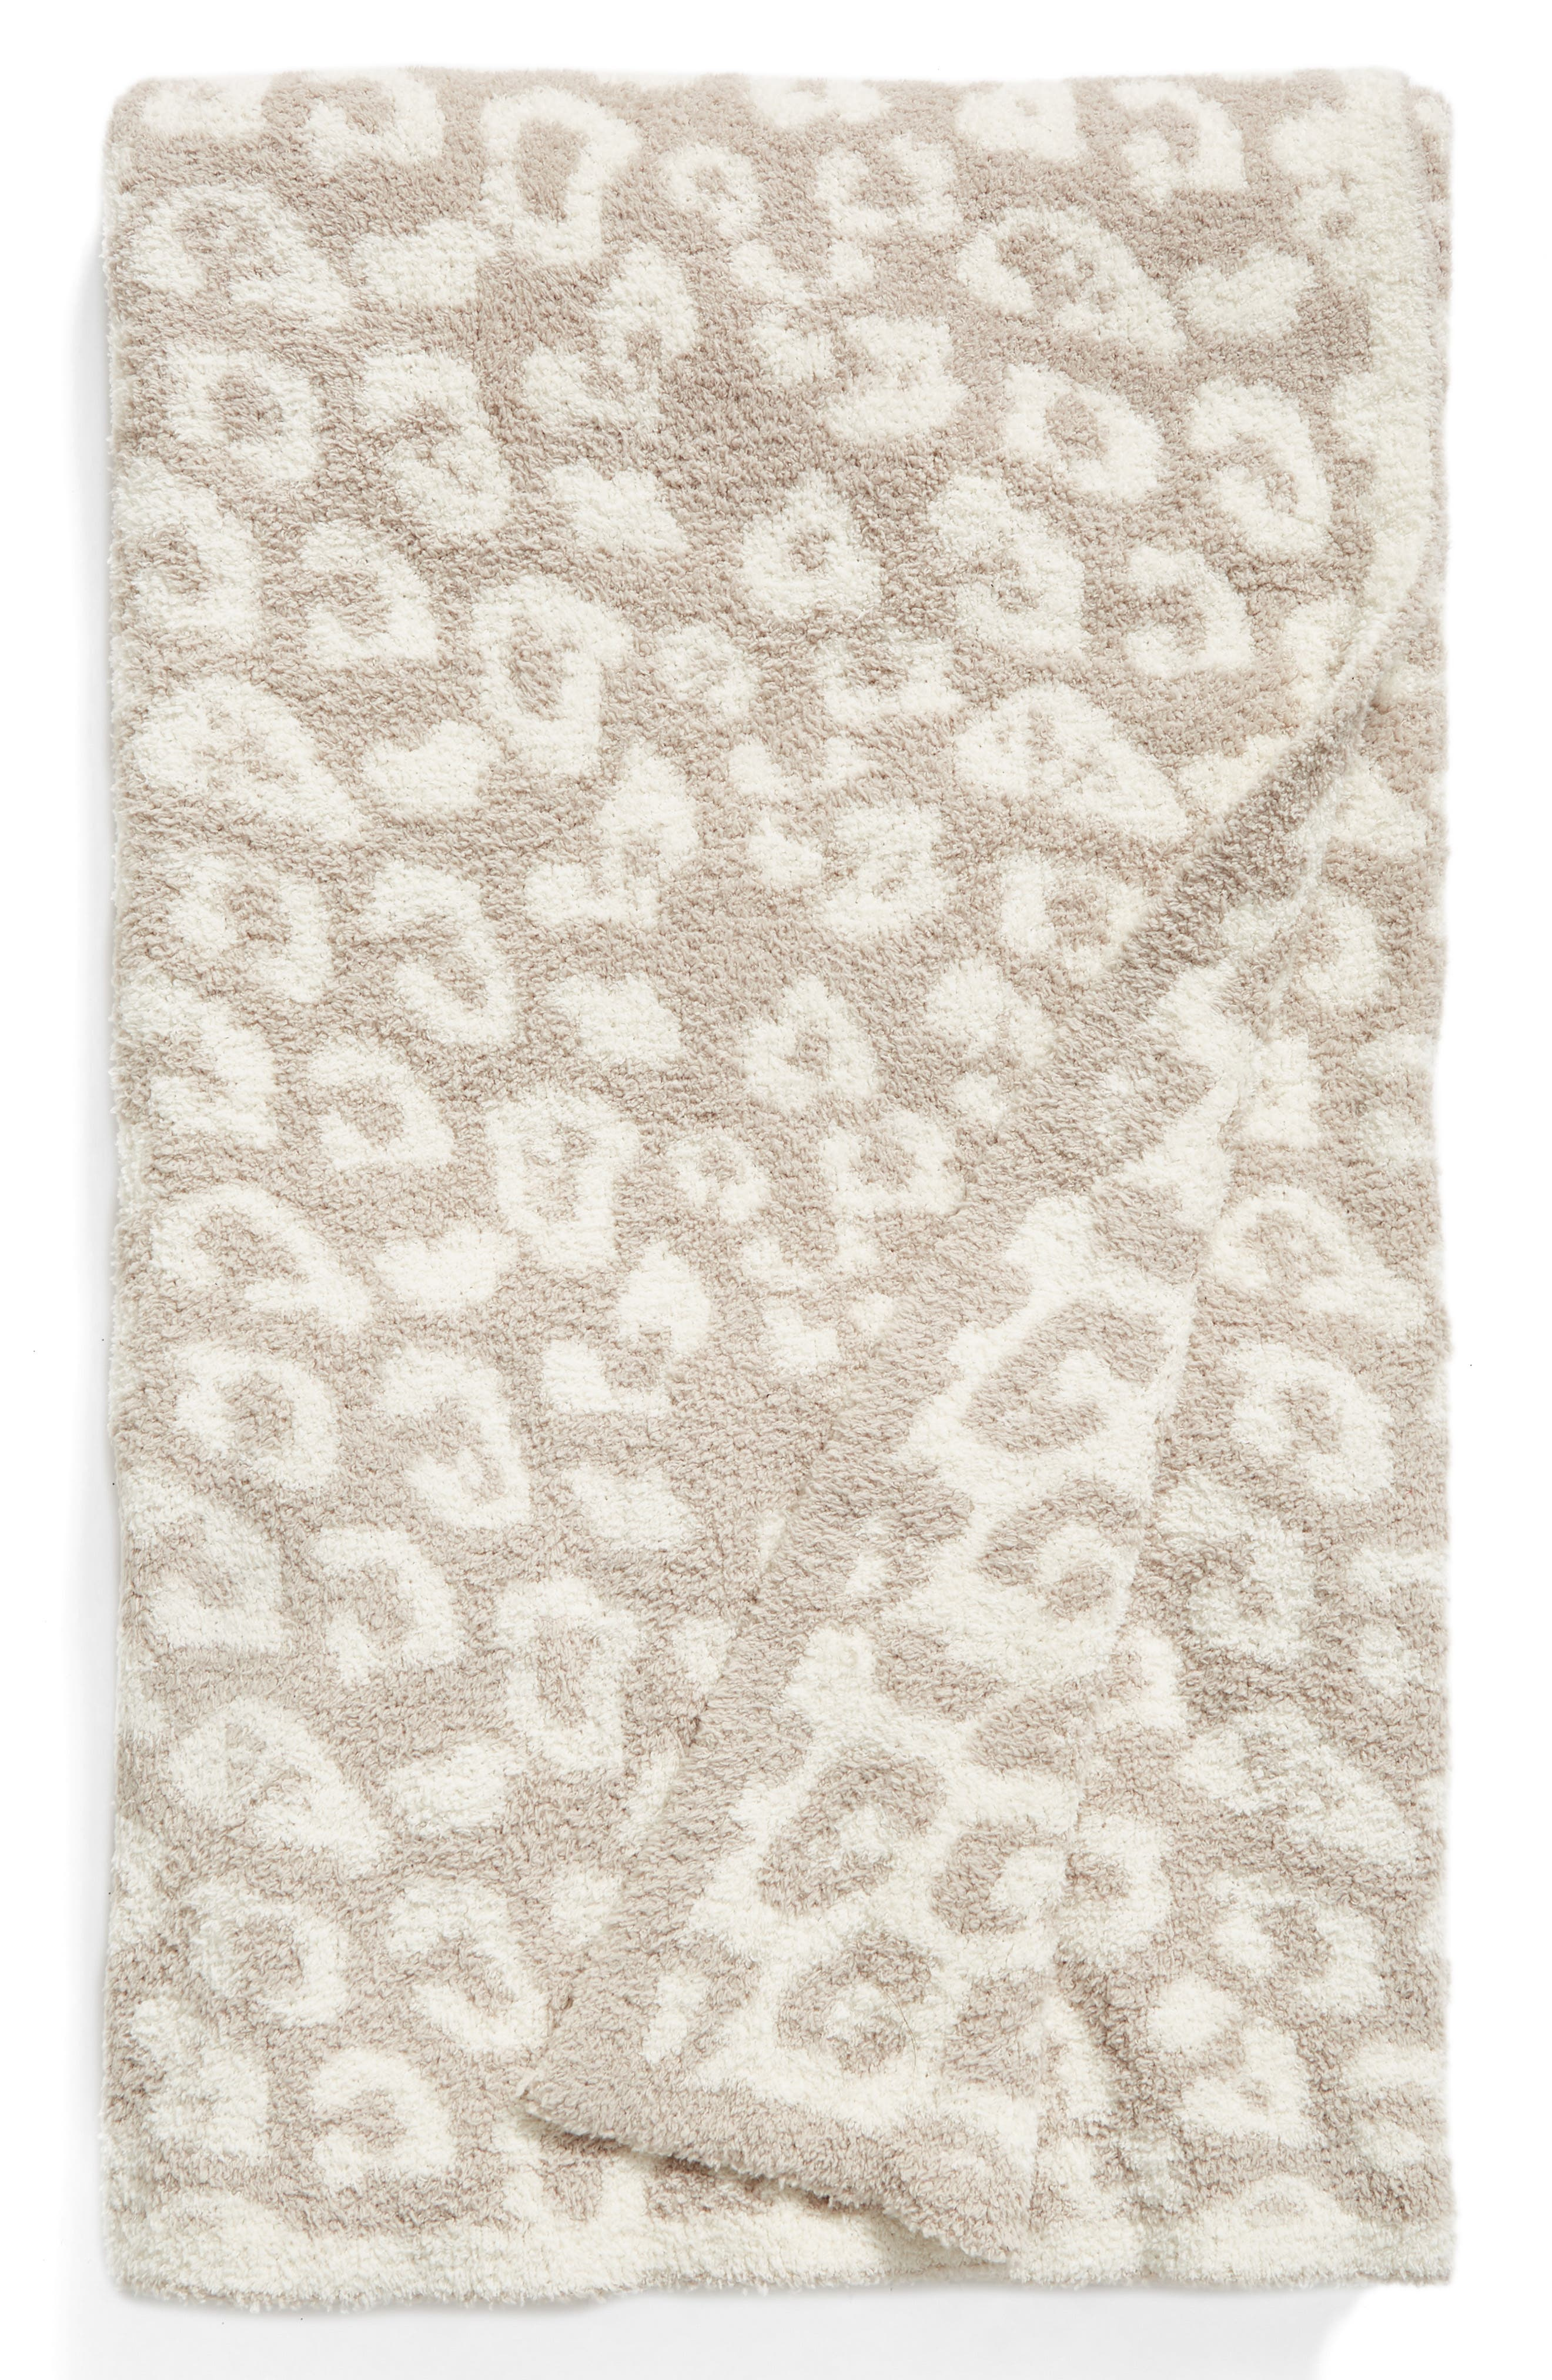 CozyChic 'In the Wild' Throw Blanket,                             Main thumbnail 1, color,                             250